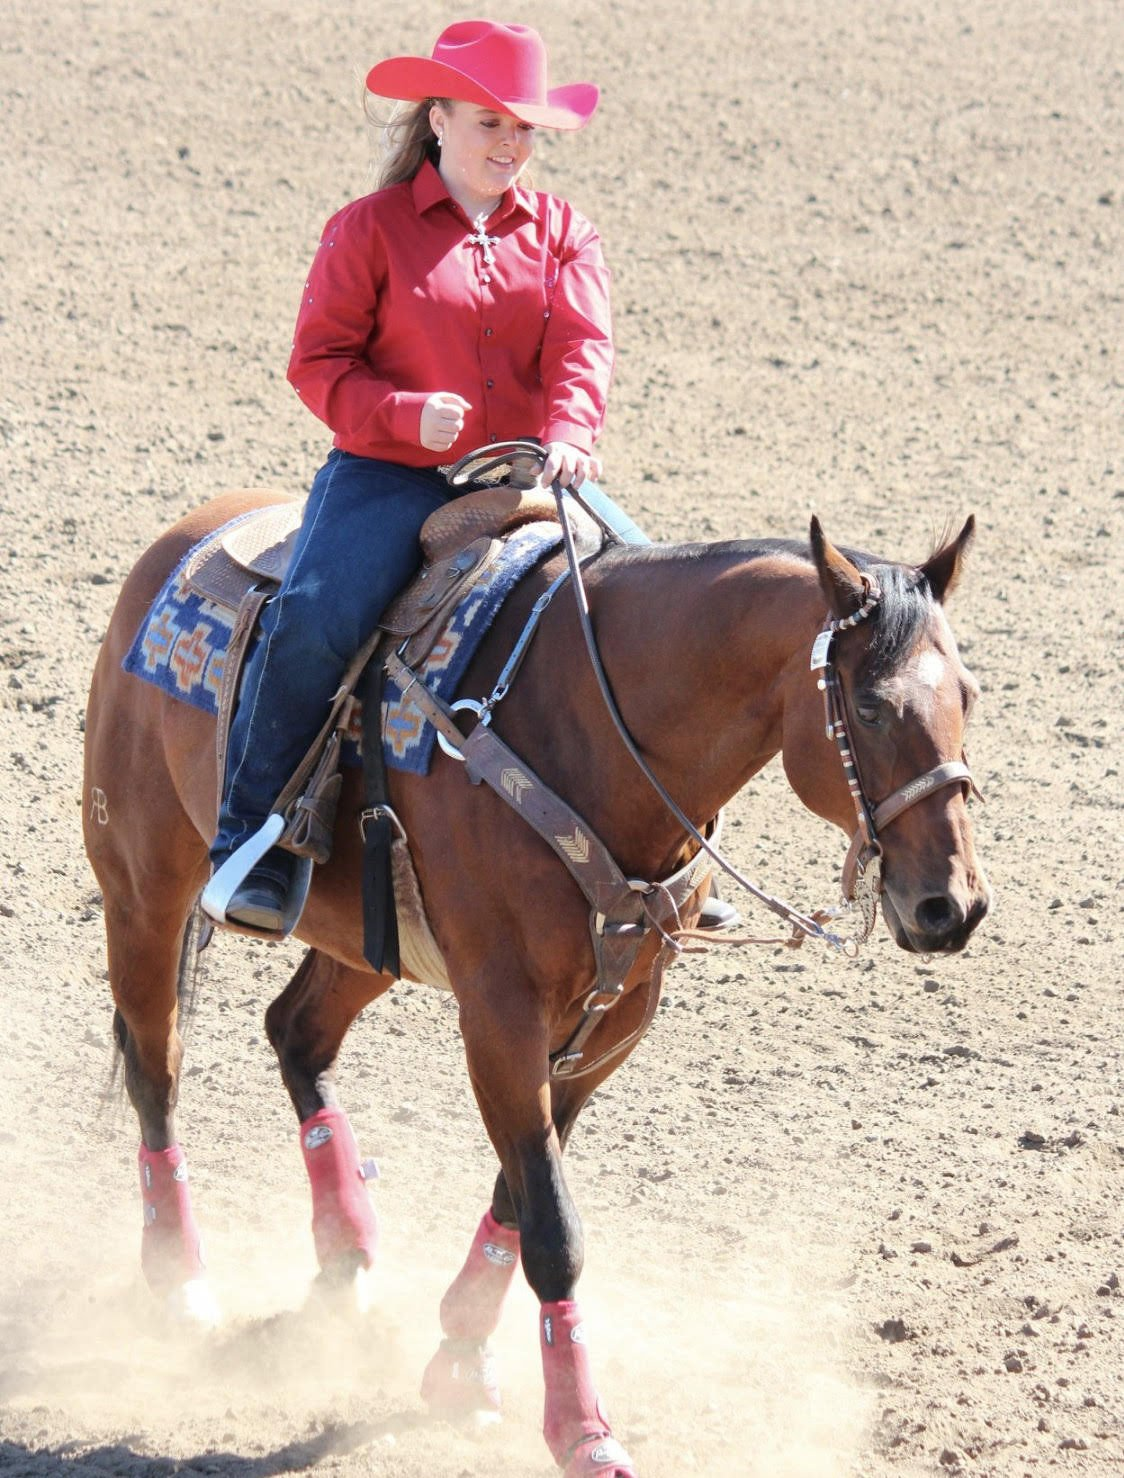 Zacharias competing for Elgin Stampede queen